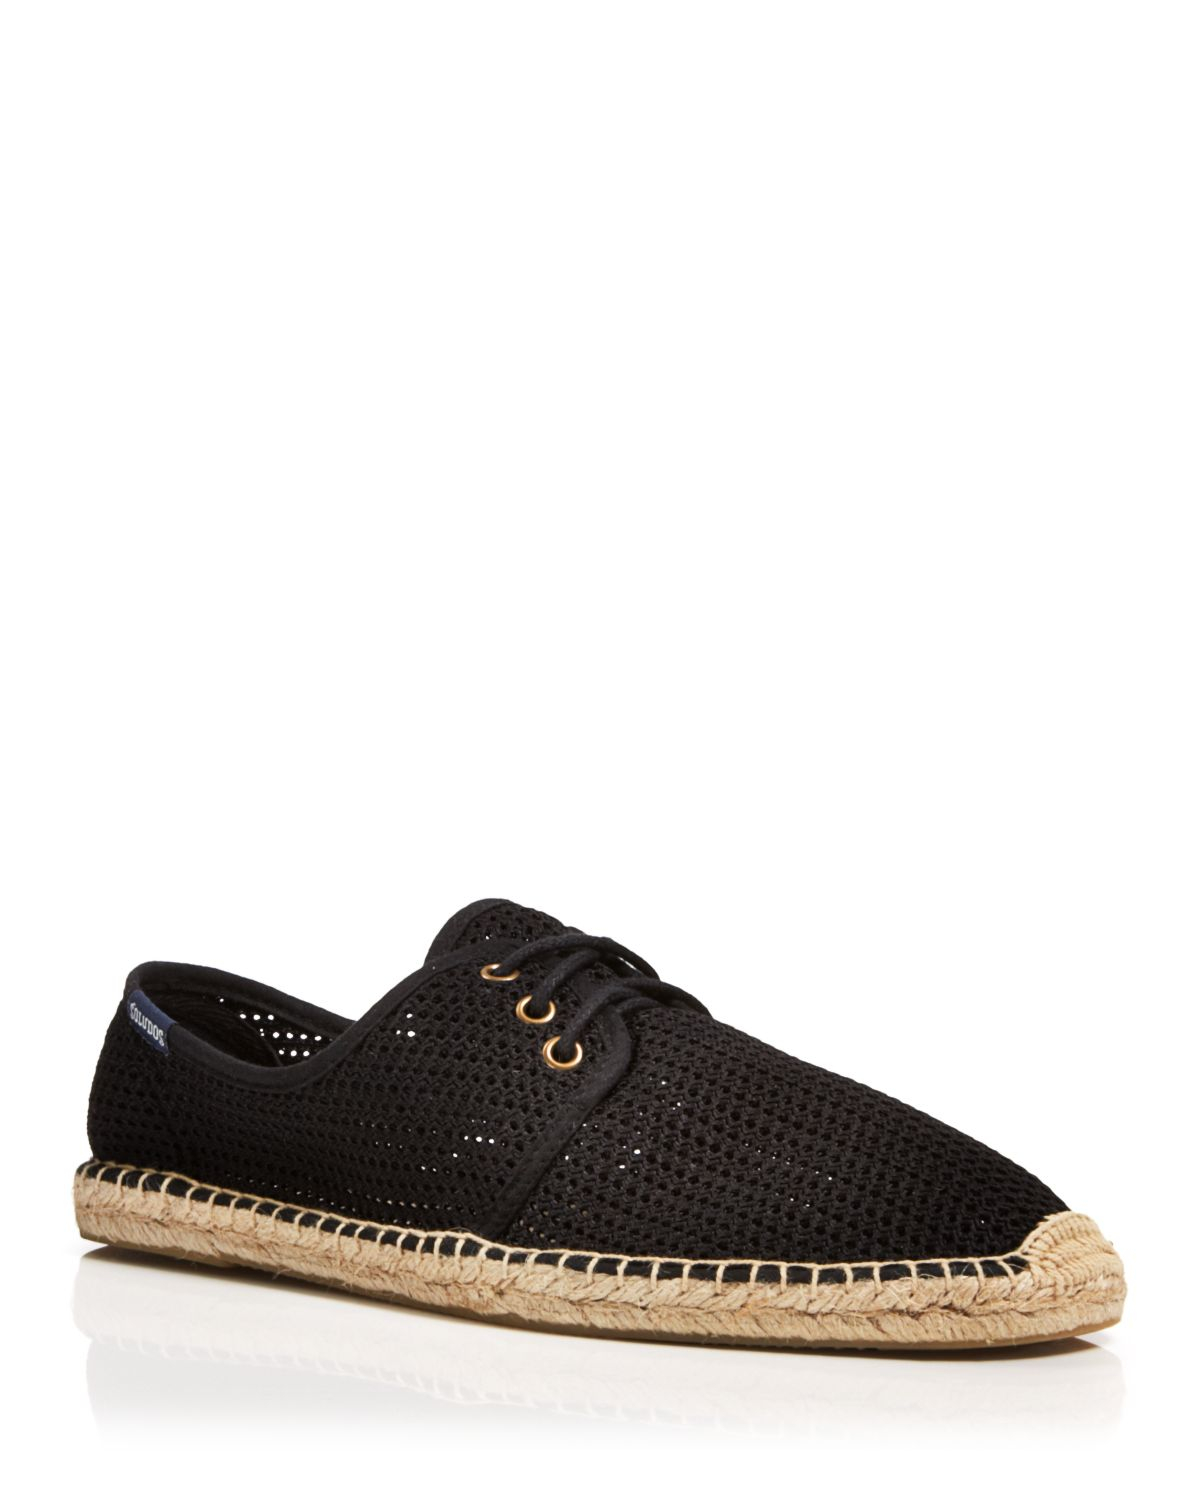 Shop Women's Soludos Black size Espadrilles at a discounted price at Poshmark. Description: Soludos Leather Lace-Up Espadrilles Color: Black Size: ***Brand New*** THE DETAILS Based on feedback from Members, this item typically runs small. We suggest sizing up.